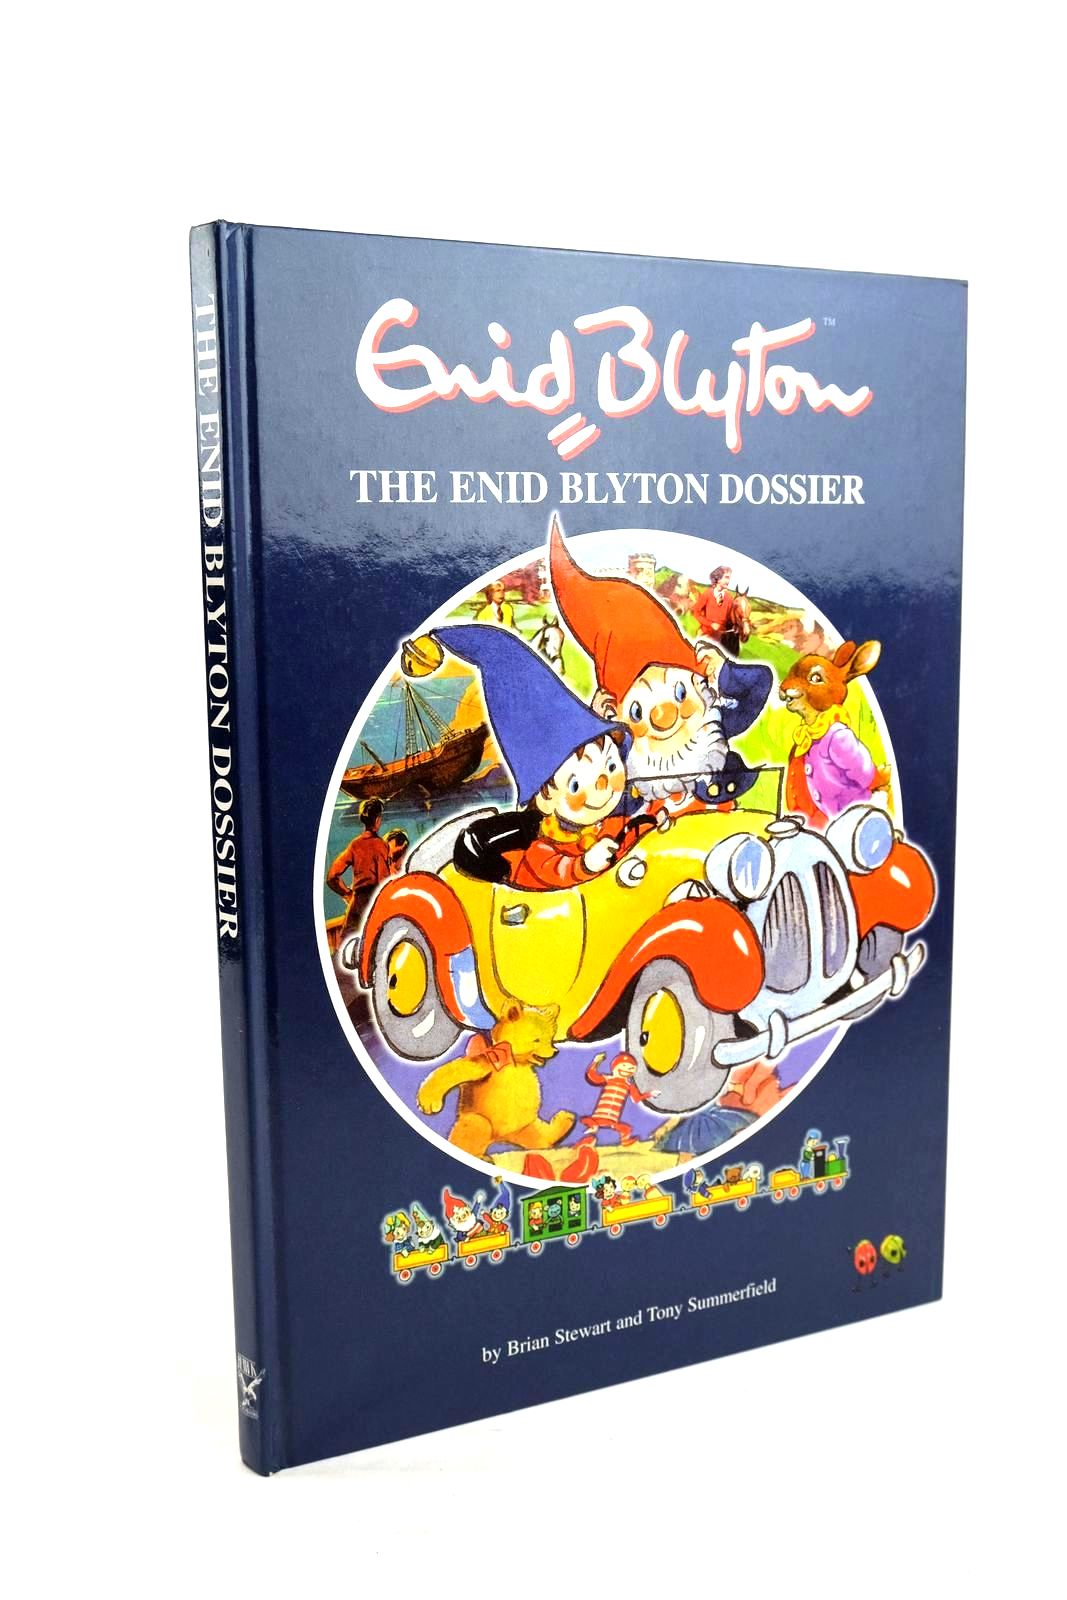 Photo of THE ENID BLYTON DOSSIER- Stock Number: 1320338